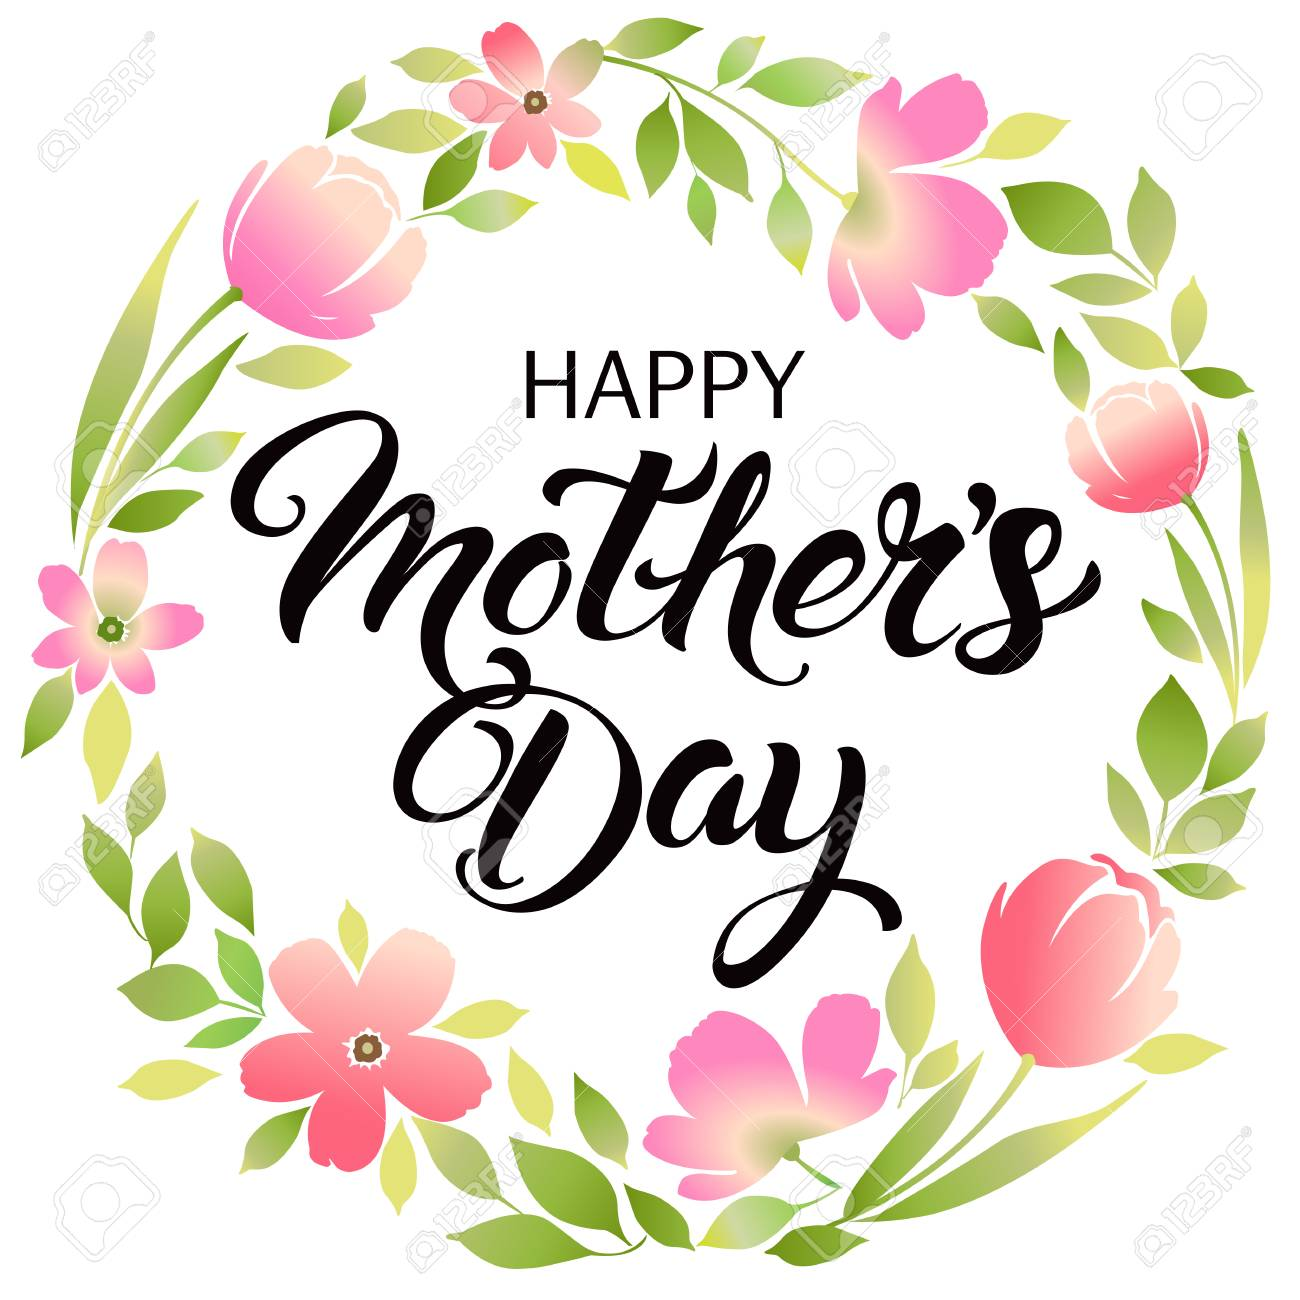 Happy mothers day lettering mothers day greeting card royalty free happy mothers day lettering mothers day greeting card stock vector 76890815 m4hsunfo